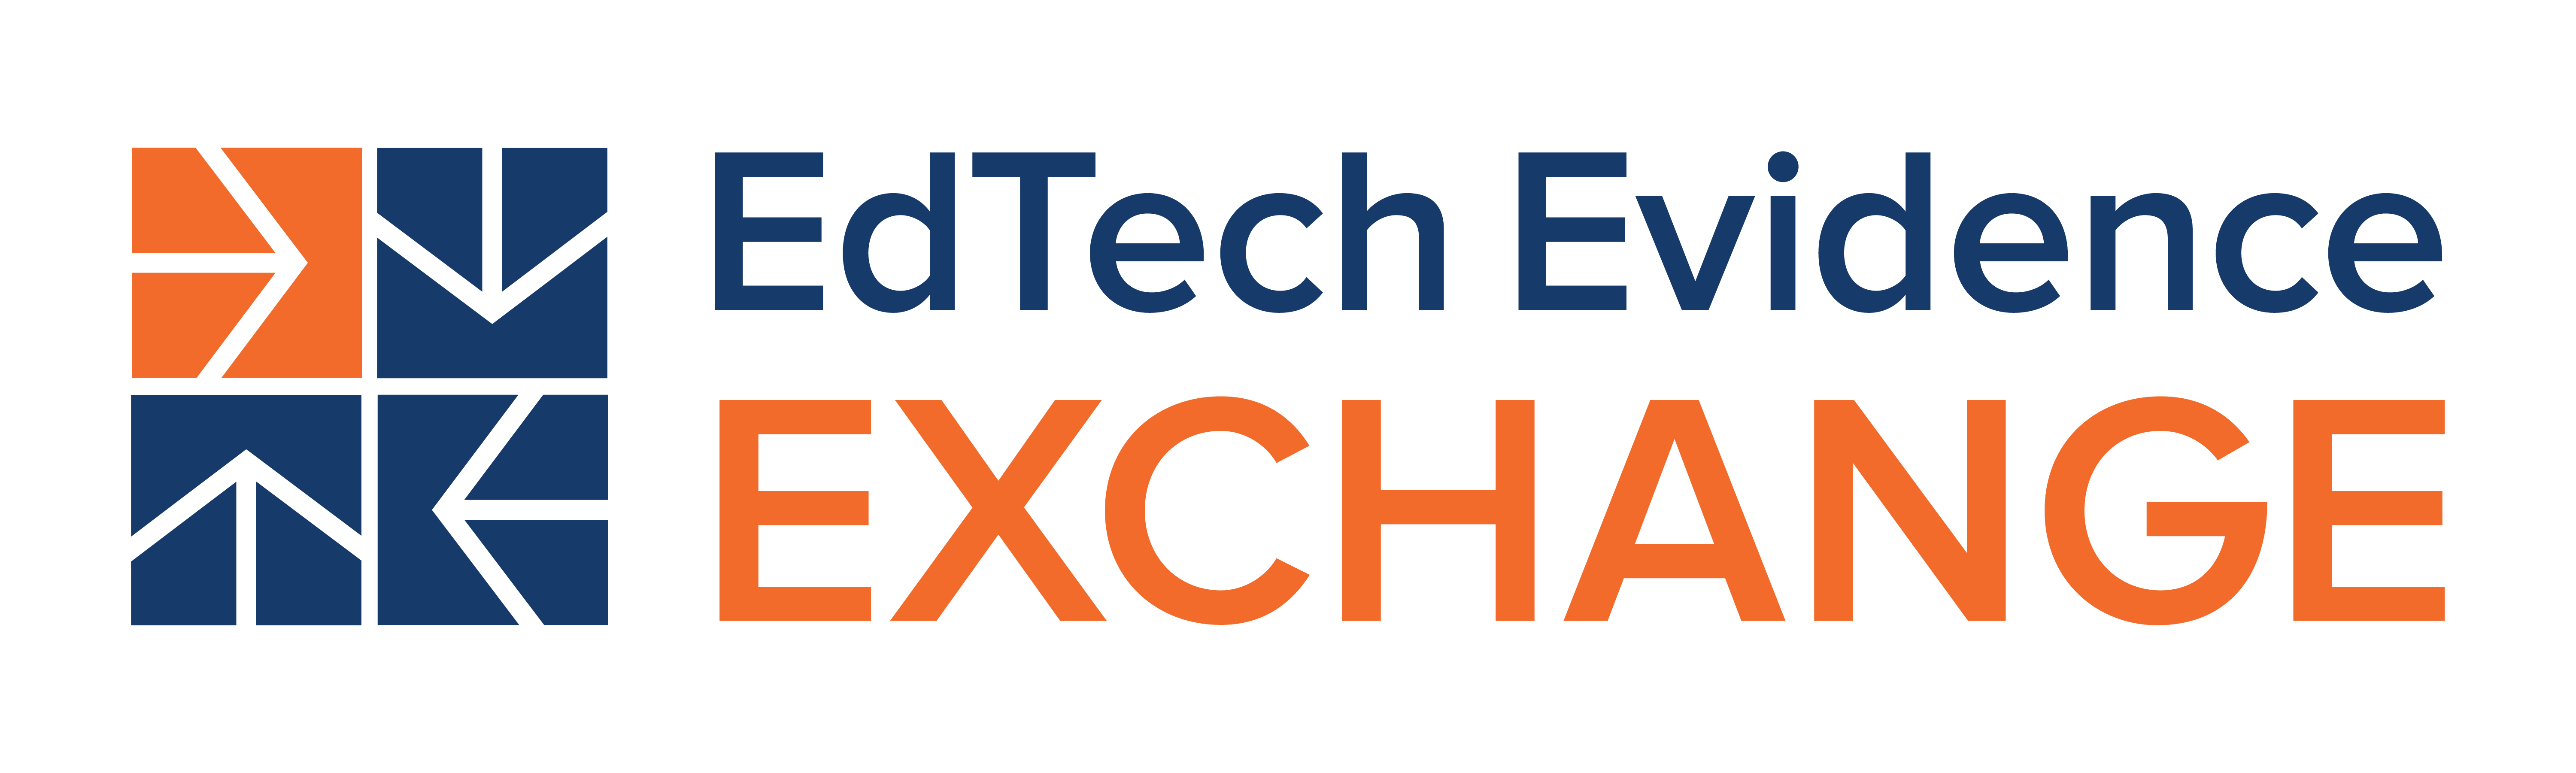 https://futureready.org/wp-content/uploads/2020/10/EdTech-Education-Exchange__Logo_Primary.png